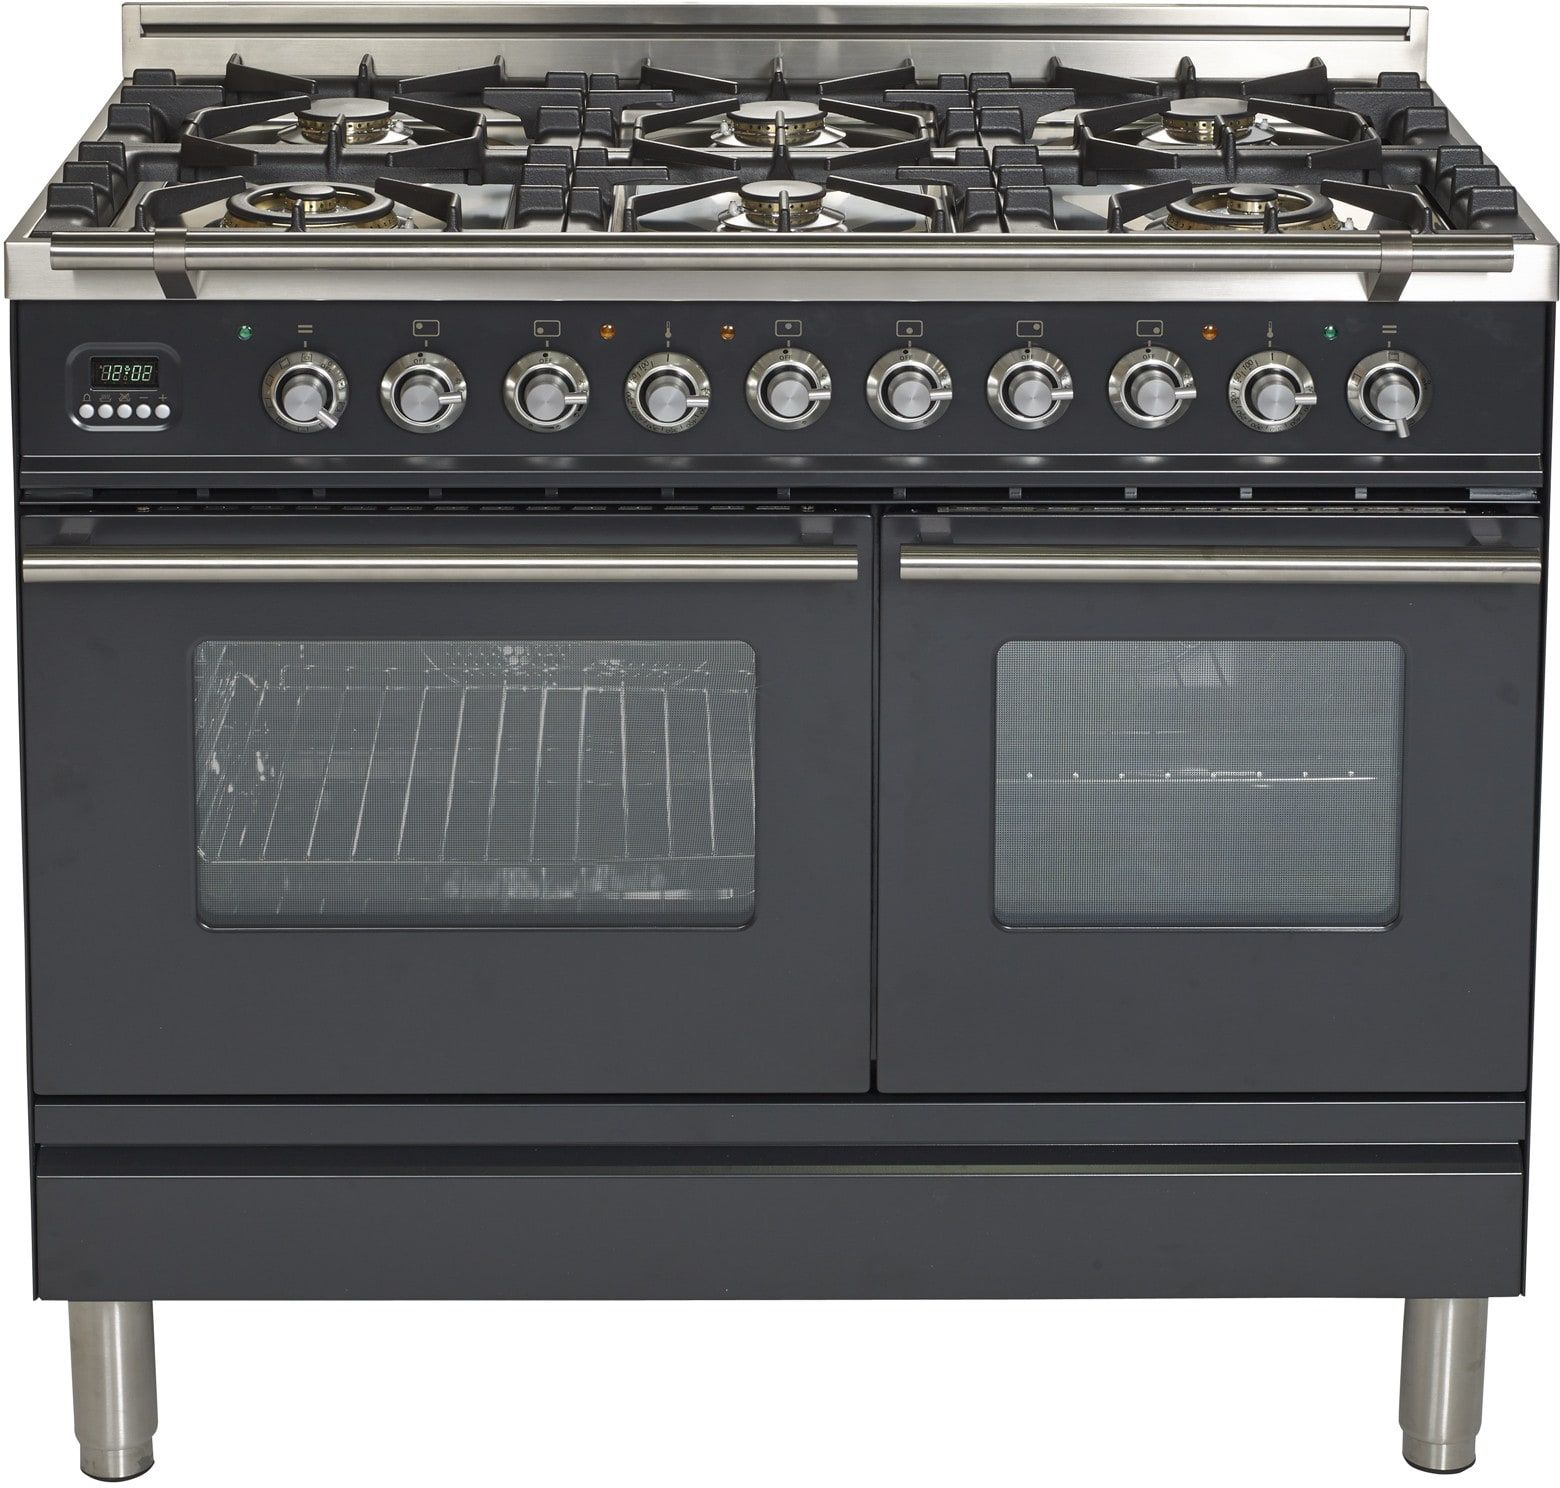 Ilve Updw1006dmpm 40 Inch Dual Fuel Double Oven Range With Digital Clock Timer Electronic Ignition Warmi Double Oven Range Gas Range Double Oven Double Oven